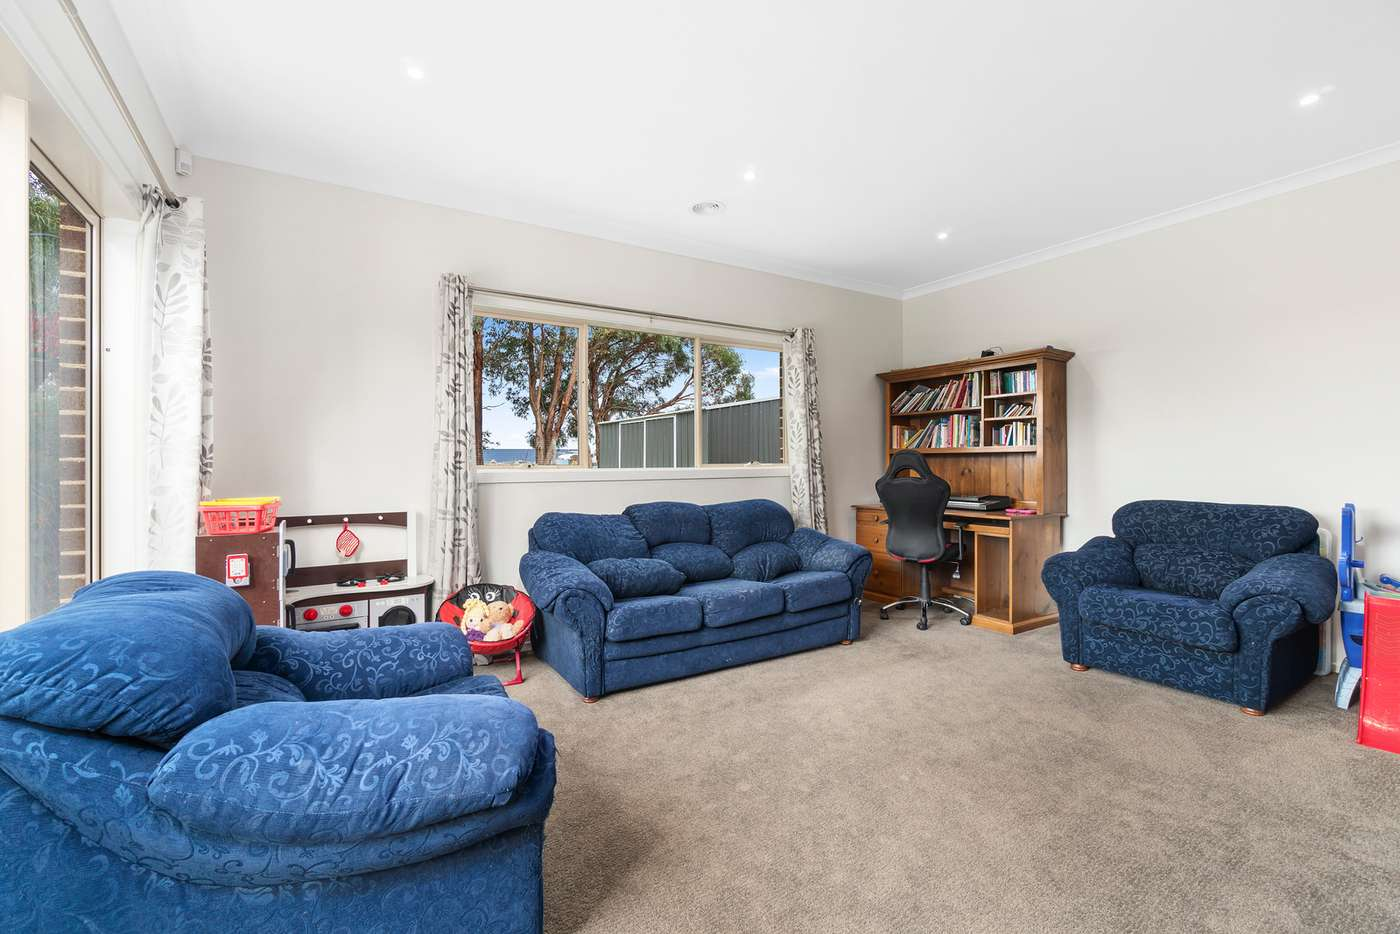 Sixth view of Homely house listing, 19 Thornley Court, Sale VIC 3850